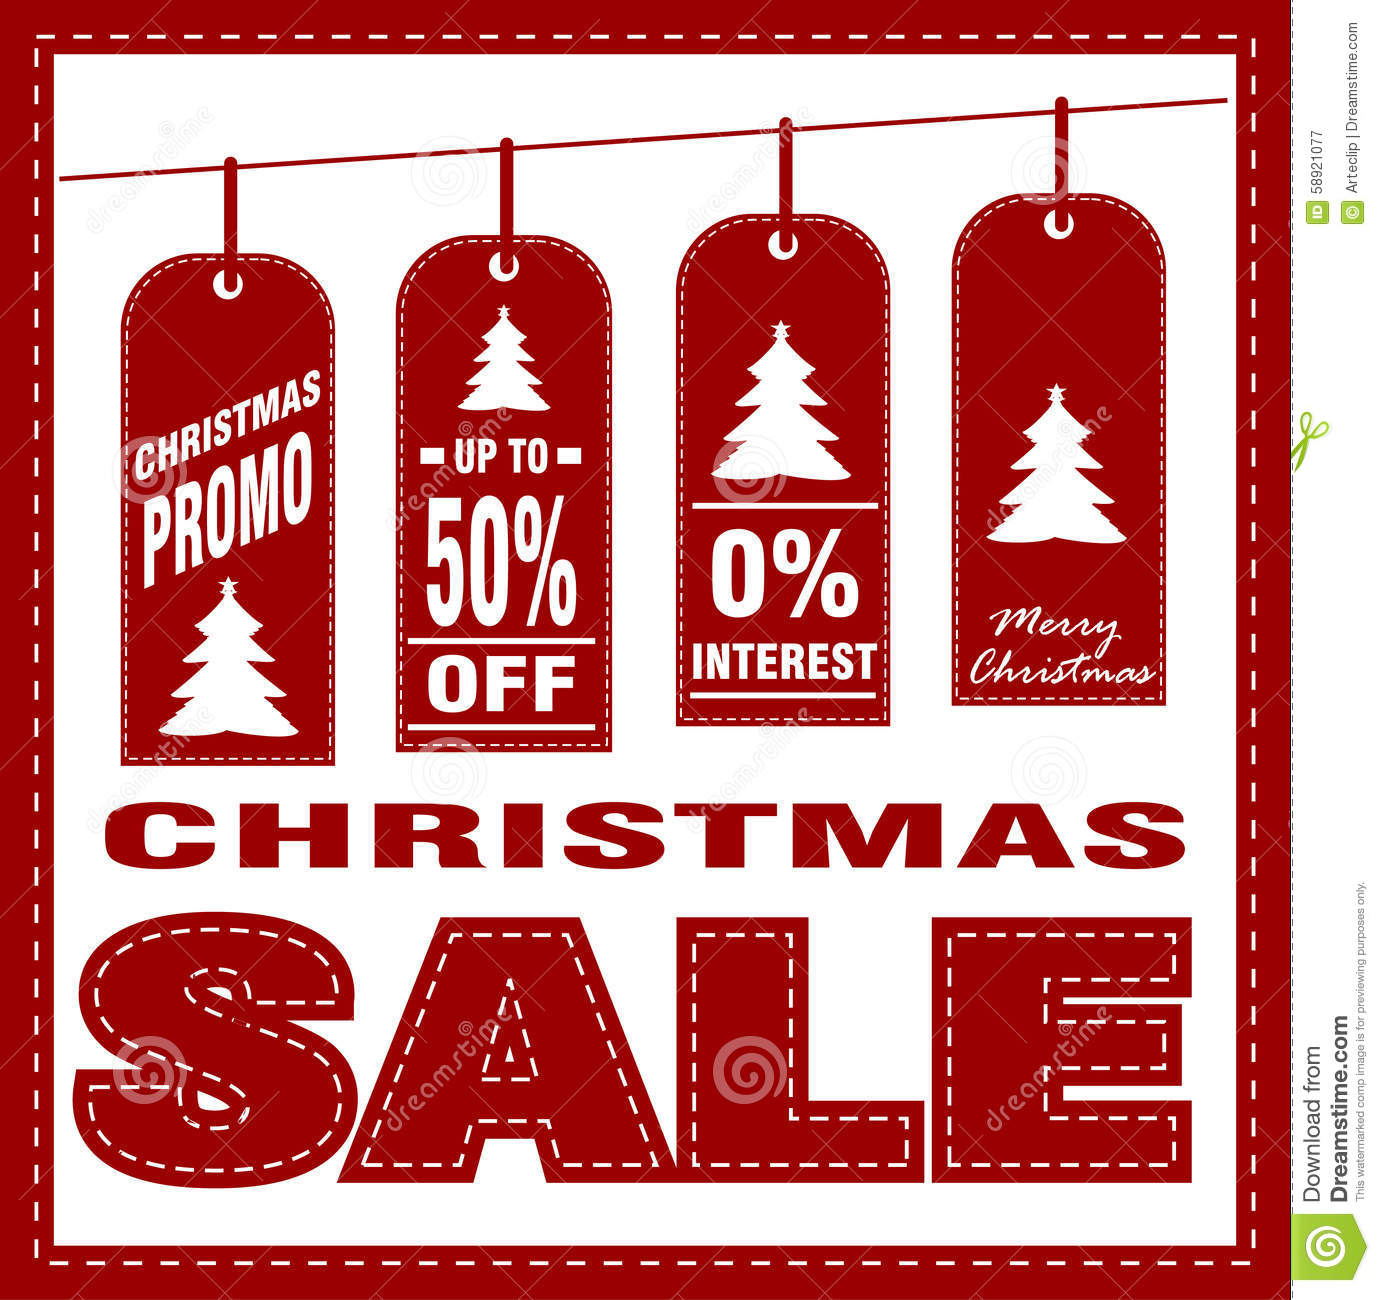 Free christmas poster design templates - Christmas Design Poster Sale Stitches Template